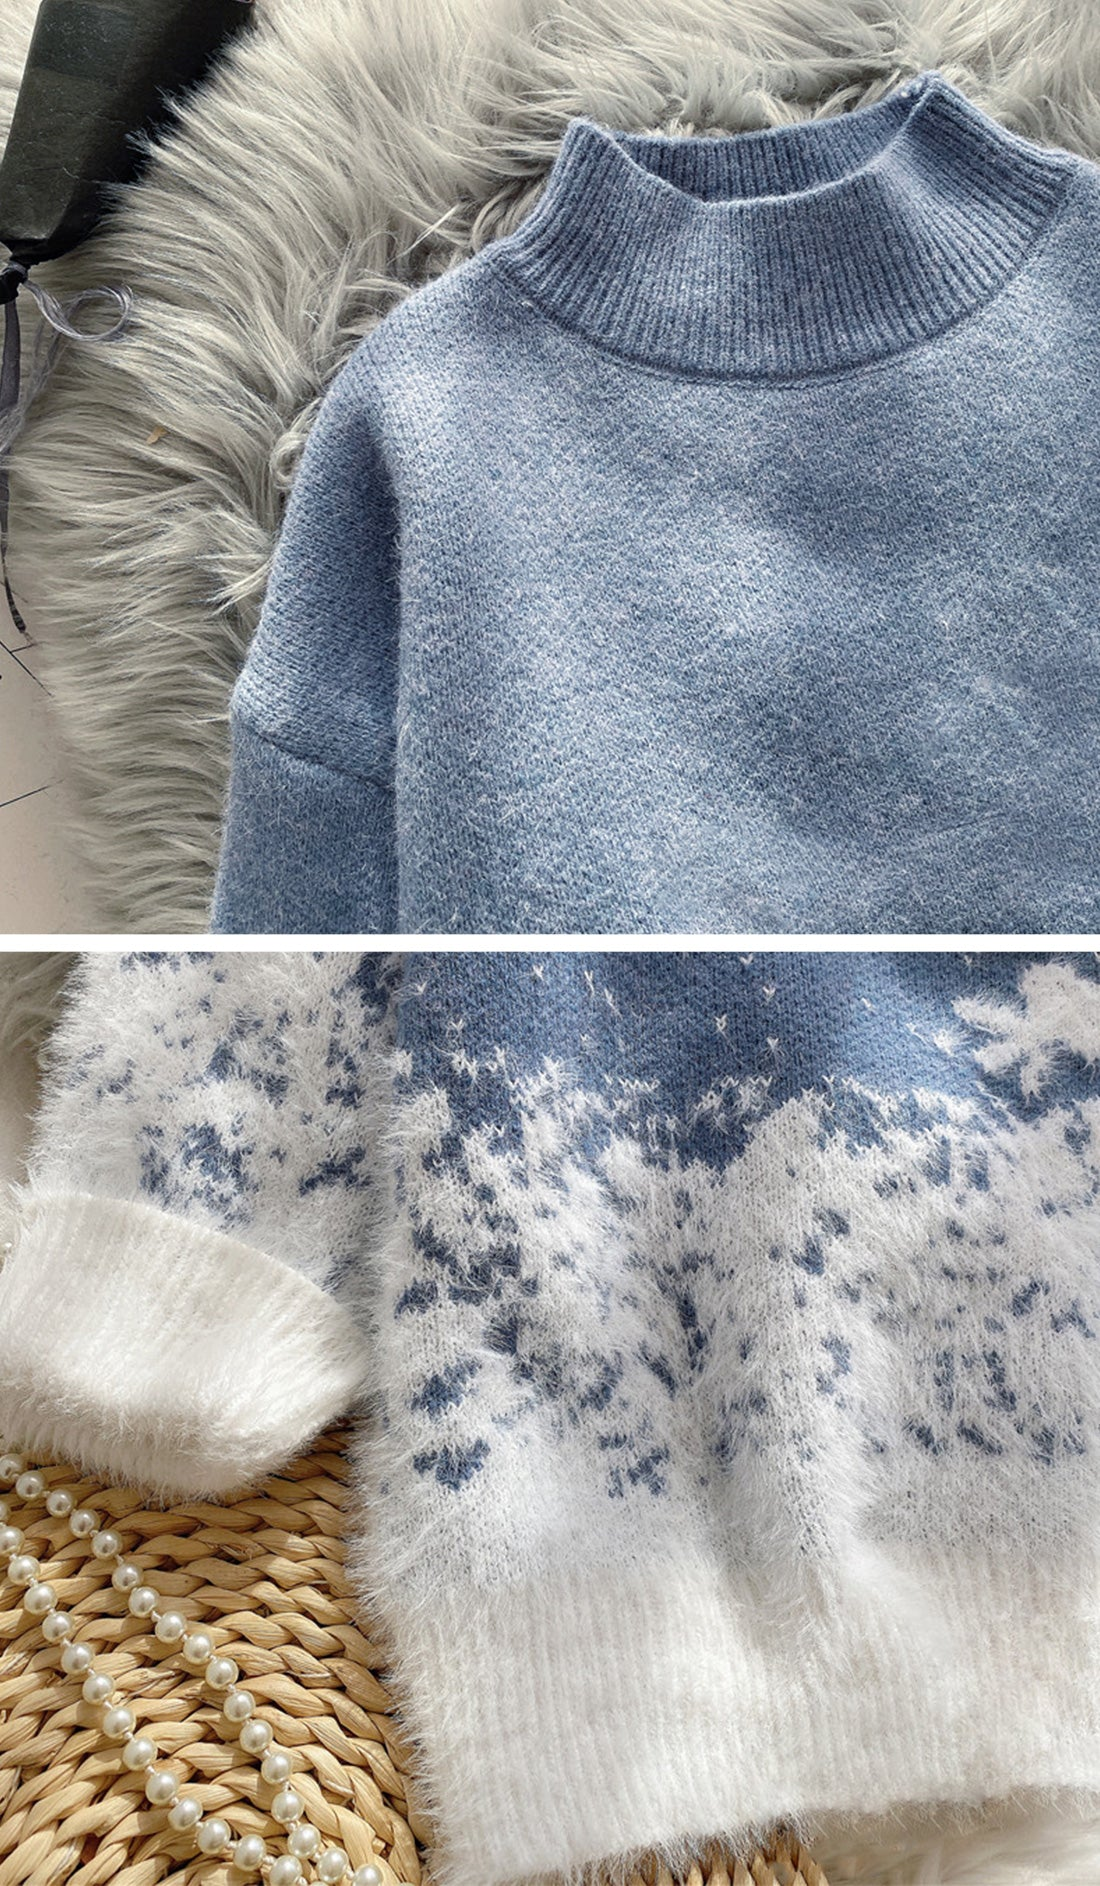 Snow Falling For Me Christmas Sweater Details 2